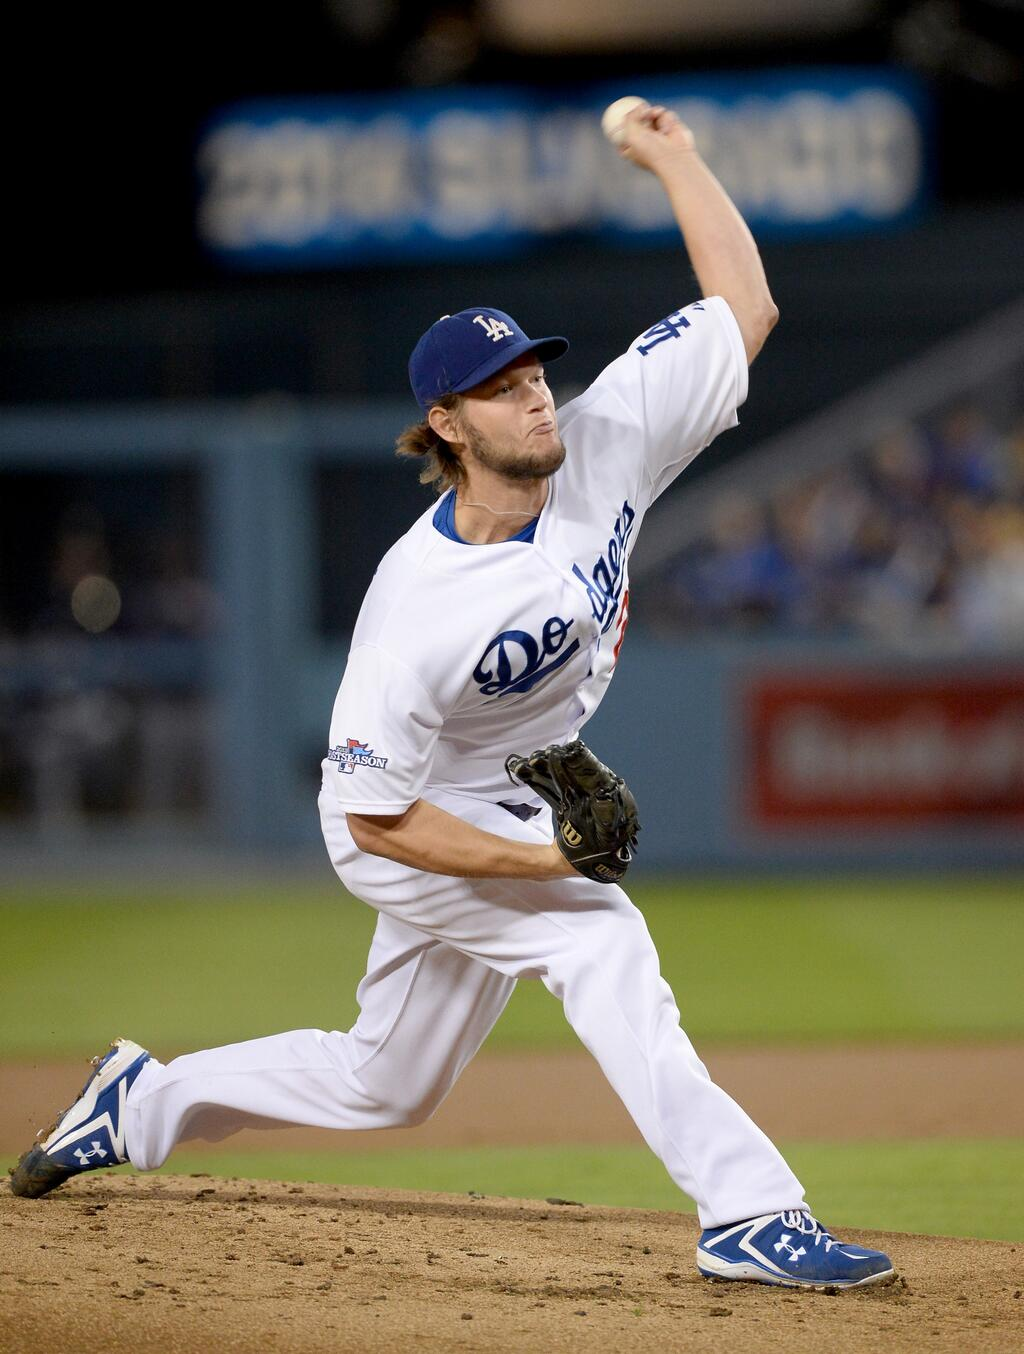 RT @MLBNetwork: Congratulations to the @Dodgers' @ClaytonKersh22 on winning the NL Outstanding Pitcher Award! #PlayersChoiceAwards http://t.co/v0RawwI9DK